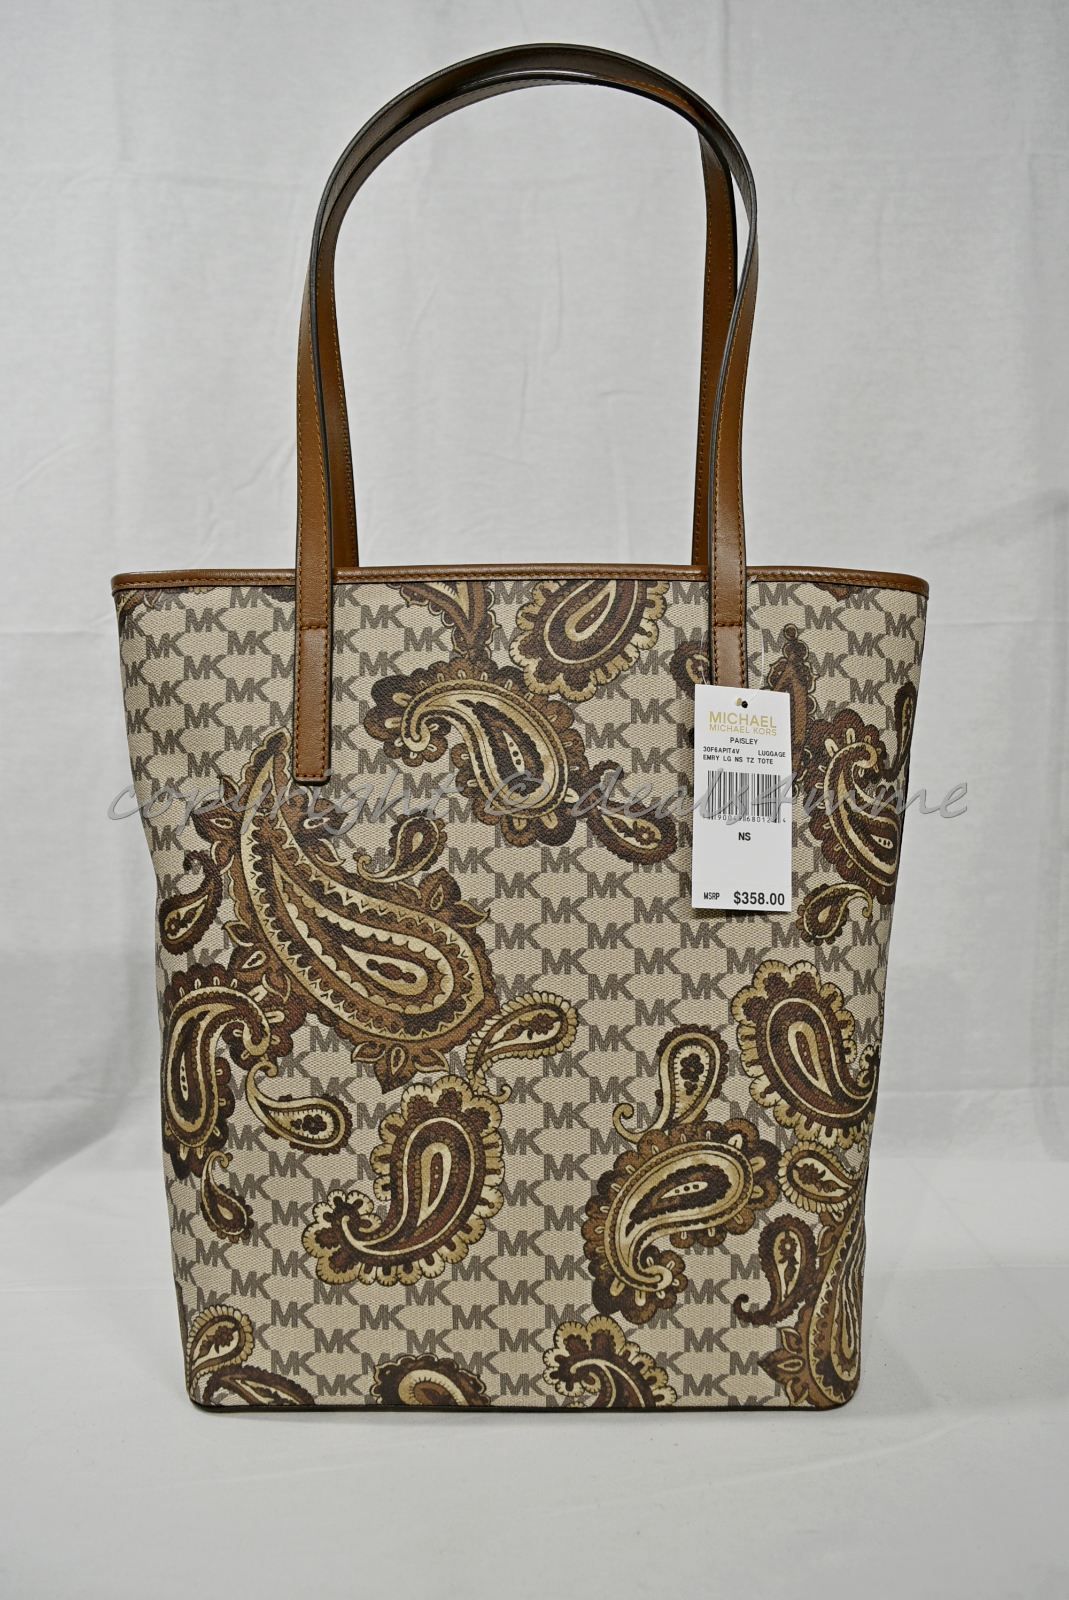 07a97797b2d4fe 100 Auth Michael Kors Emry Large North/south Heritage Paisley Tote Luggage  for sale online | eBay